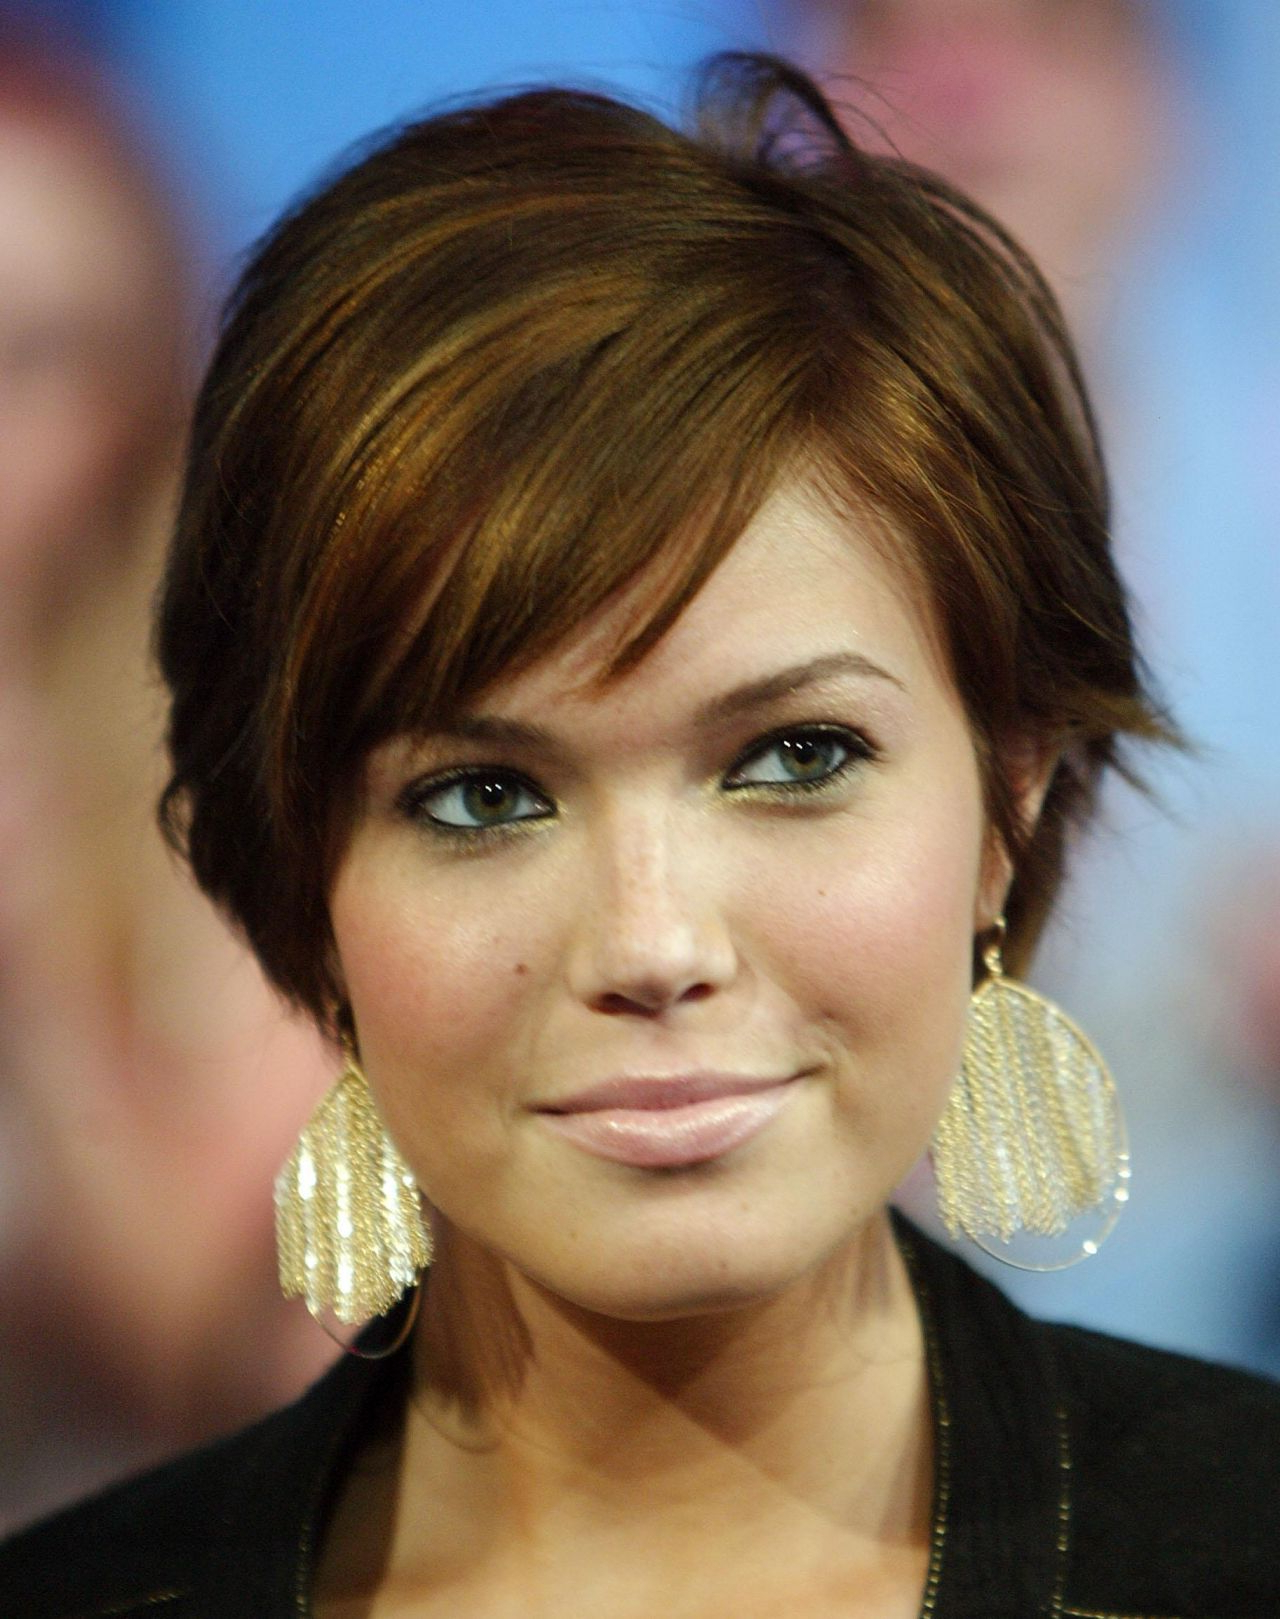 Short Hairstyles Round Face | Hair | Pinterest | Short Hairstyles With Wavy Short Hairstyles For Round Faces (View 8 of 25)